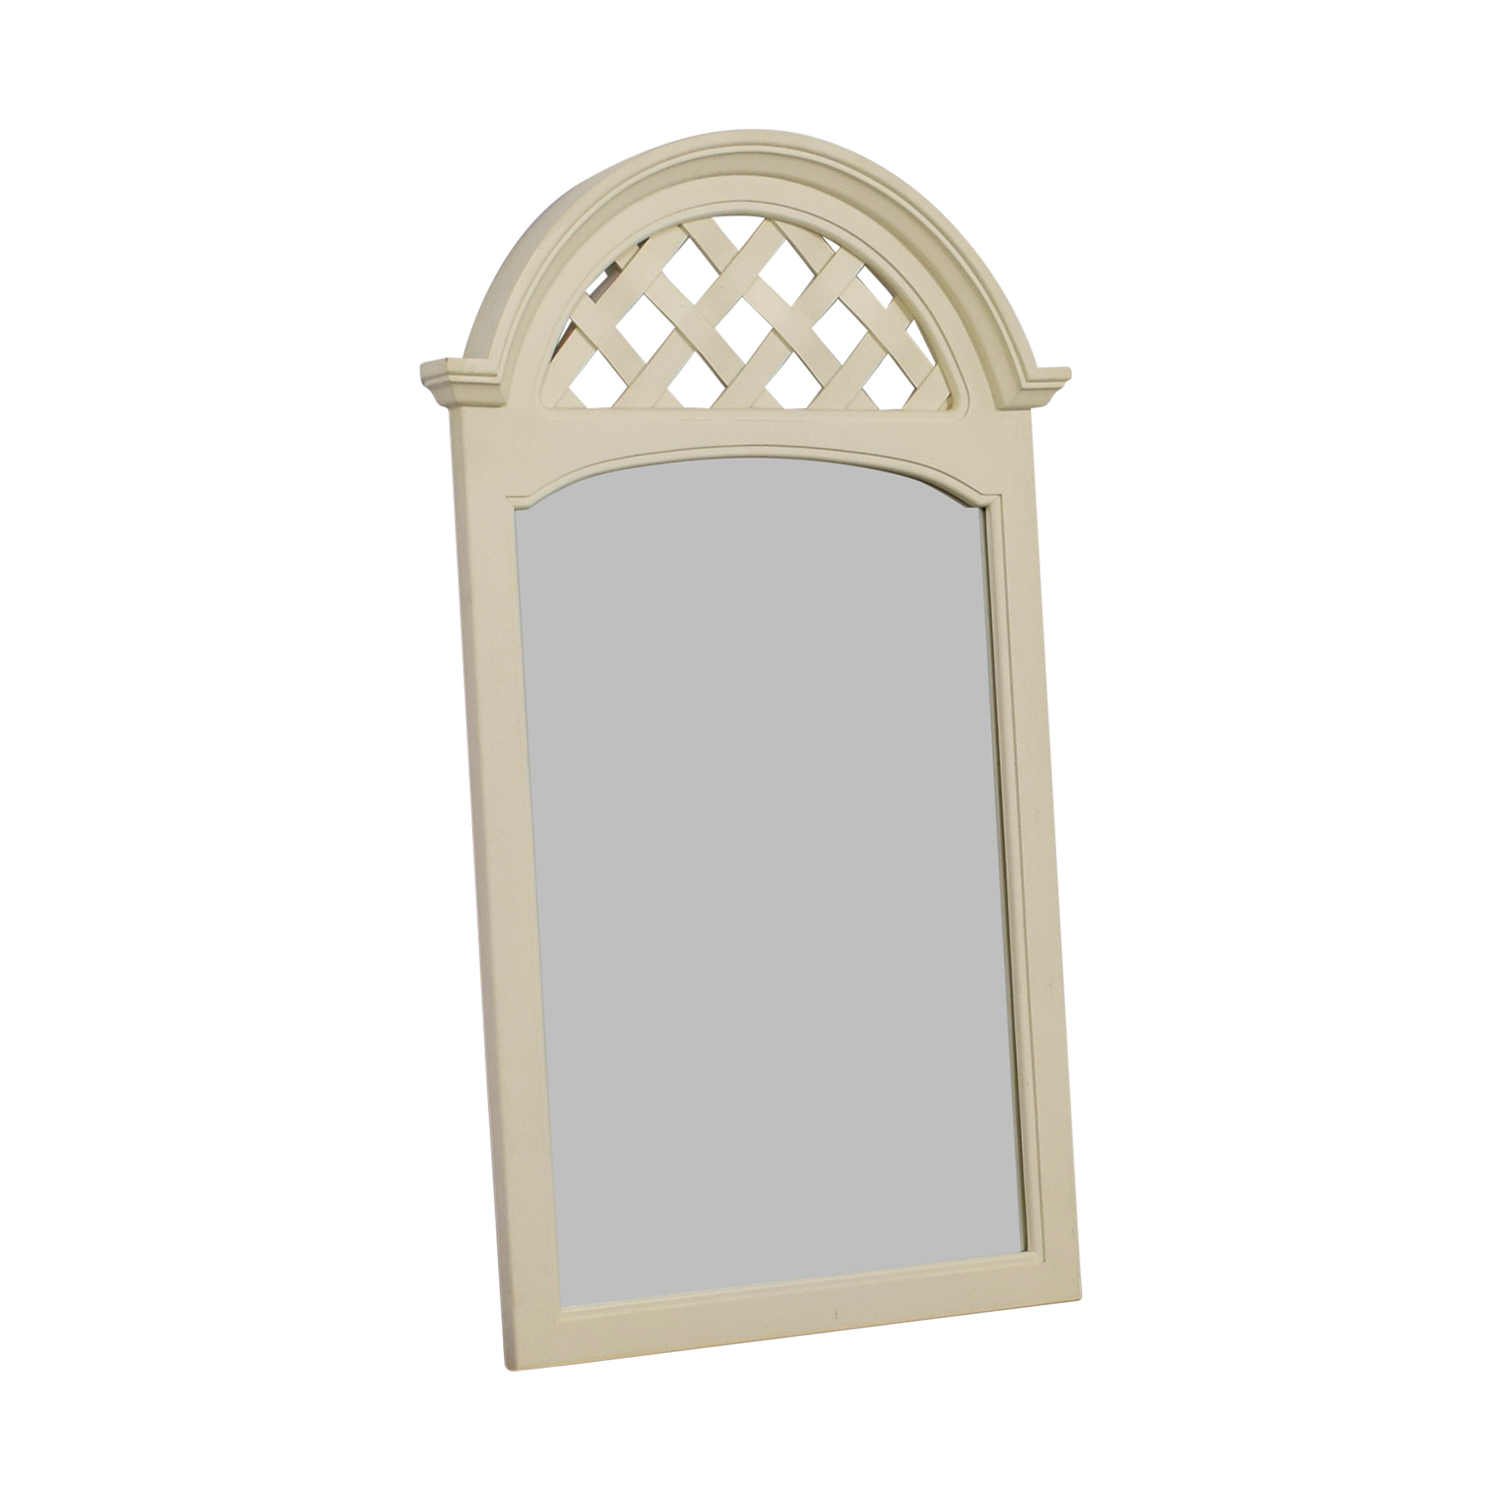 Stanley Furniture Stanley Furniture White Mirror on sale